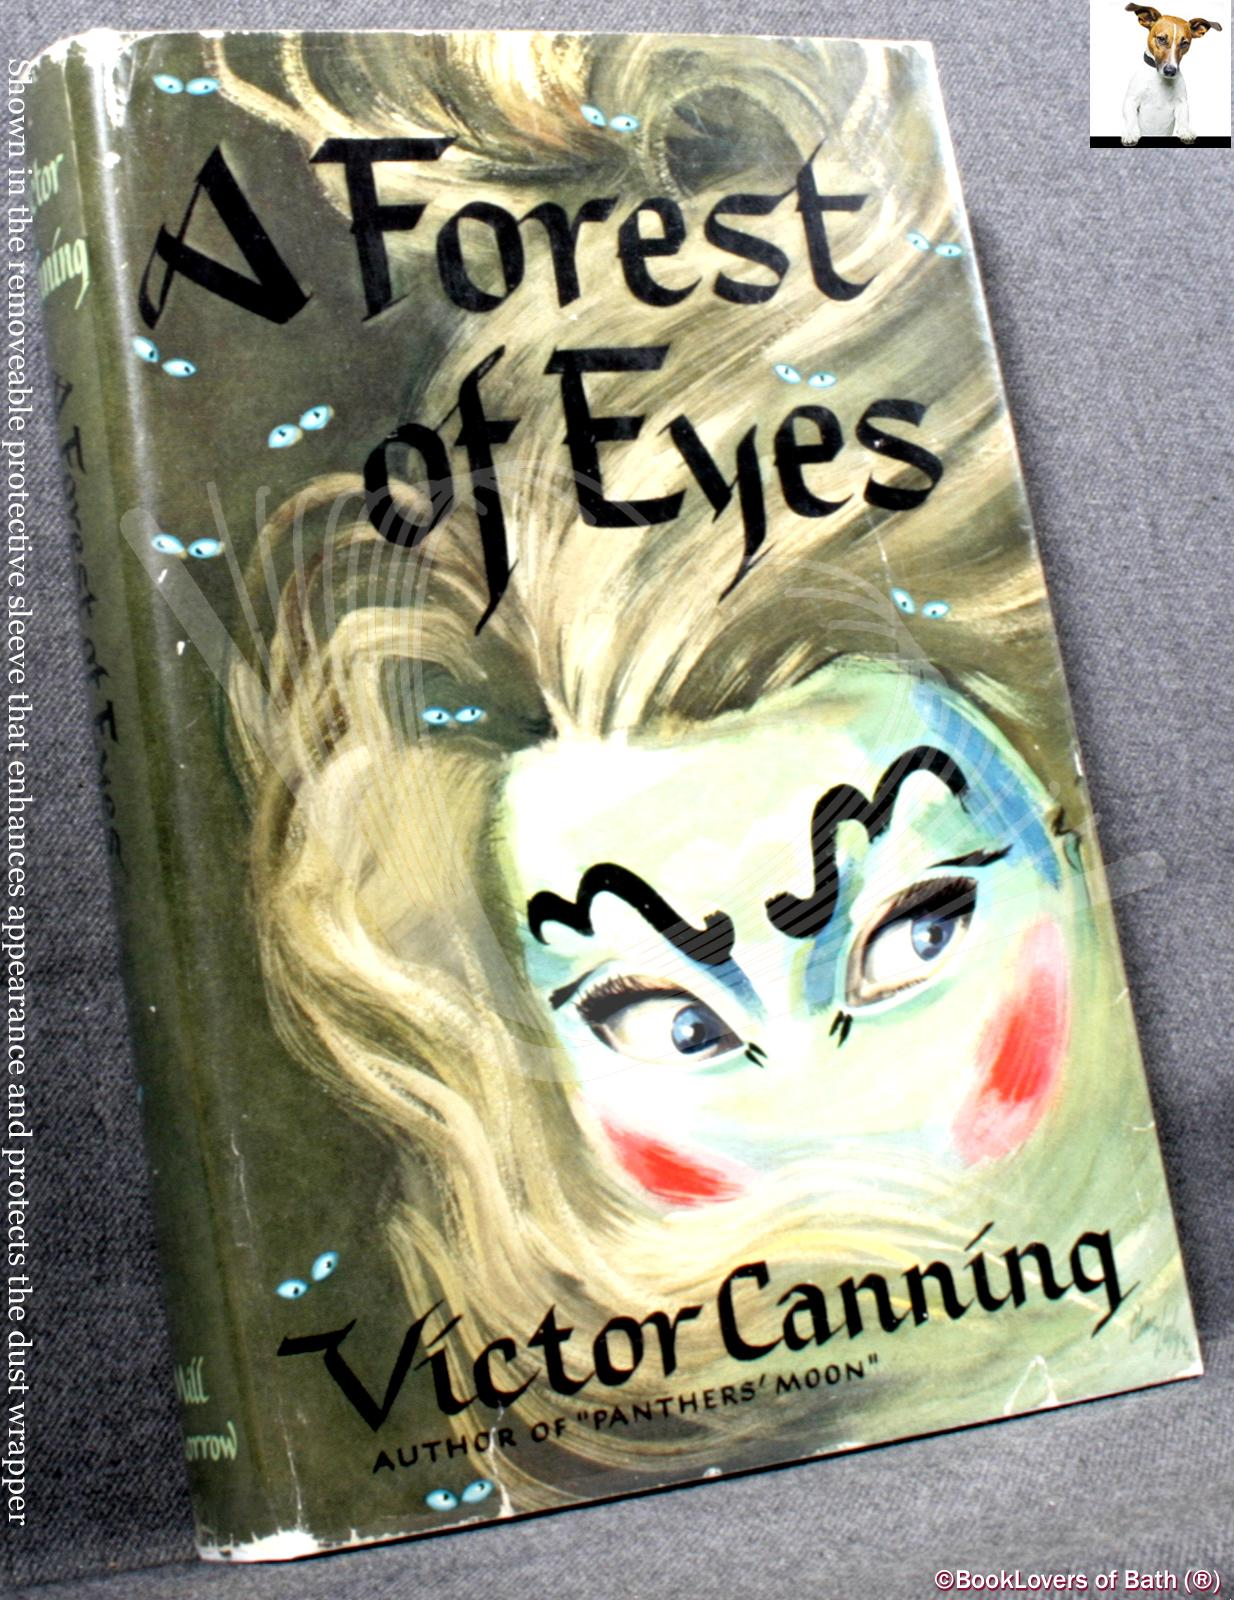 A Forest of Eyes - Victor Canning